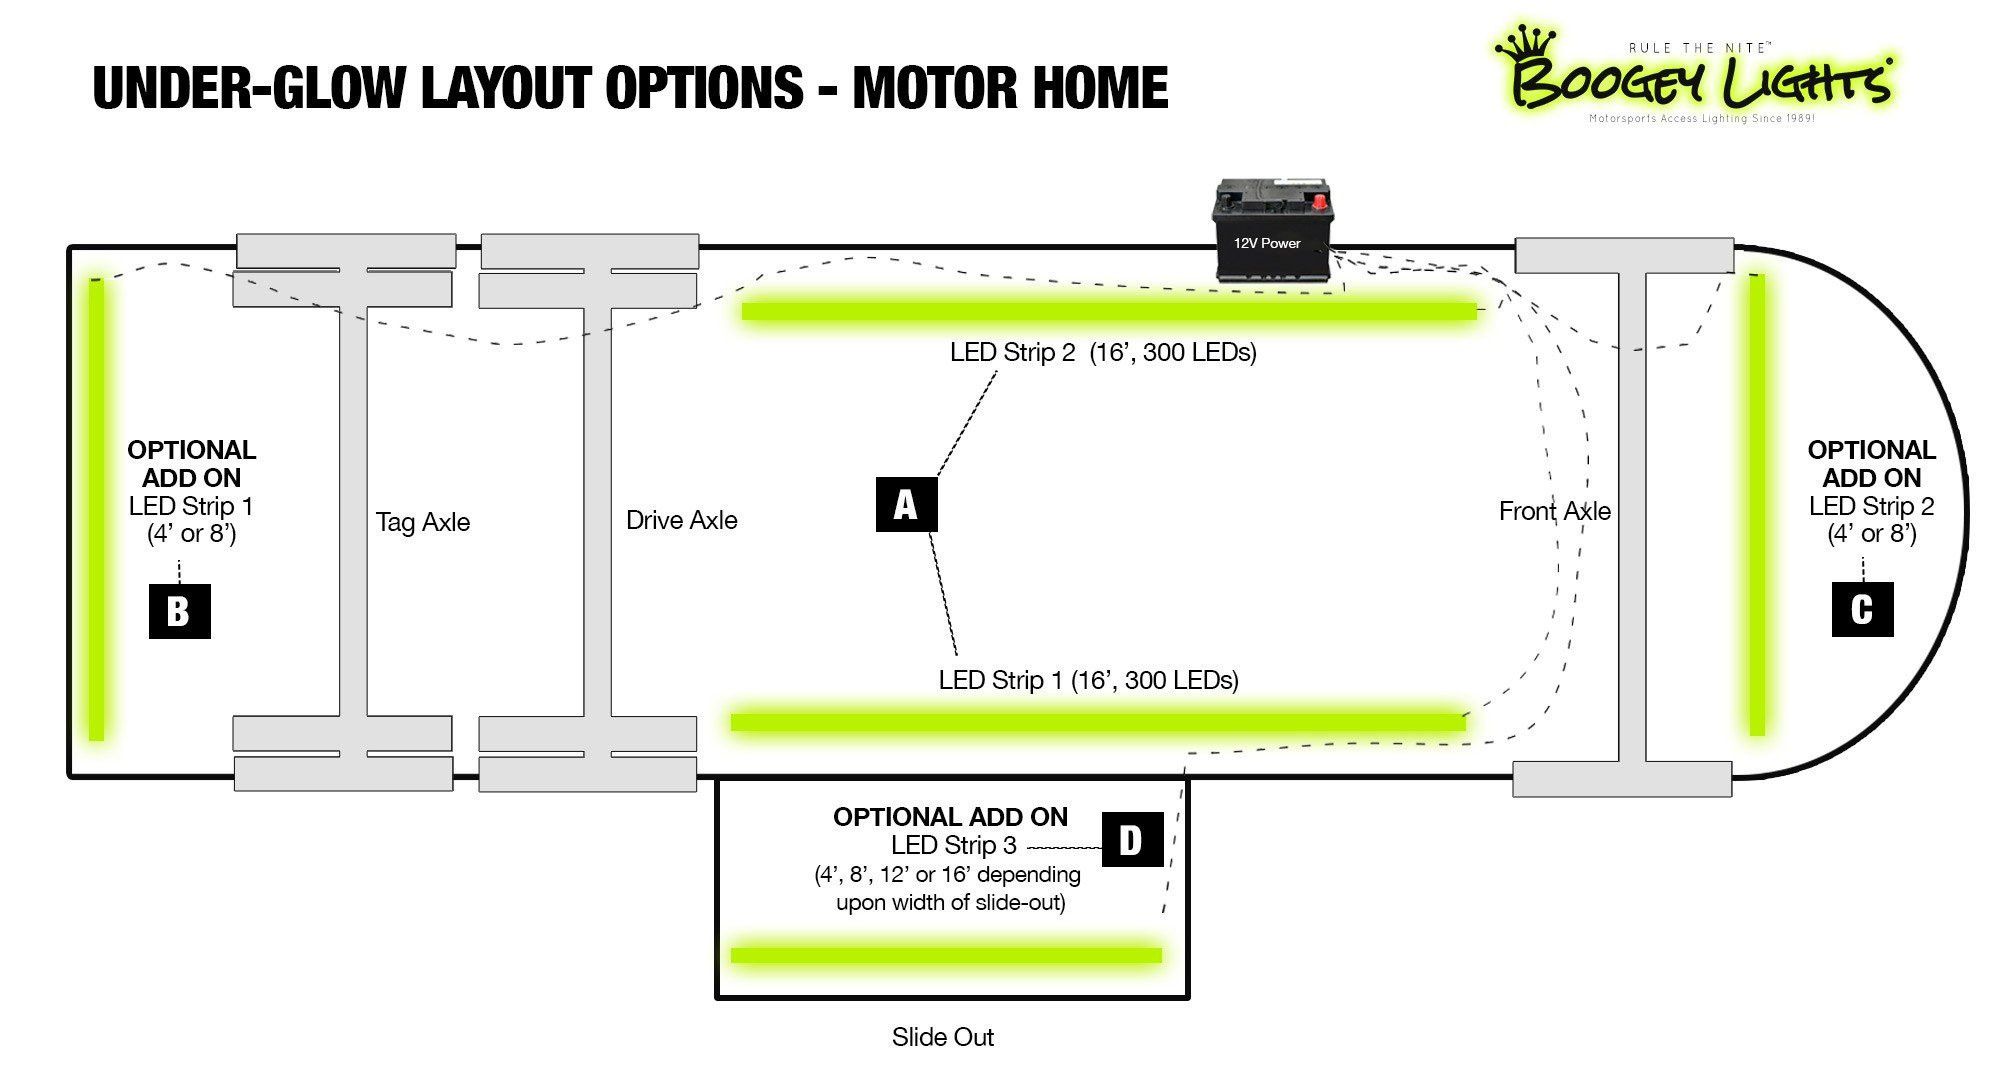 Led Trailer Lights Wiring Diagram Boat - Wiring Schematics Diagram - Utility Trailer Lights Wiring Diagram